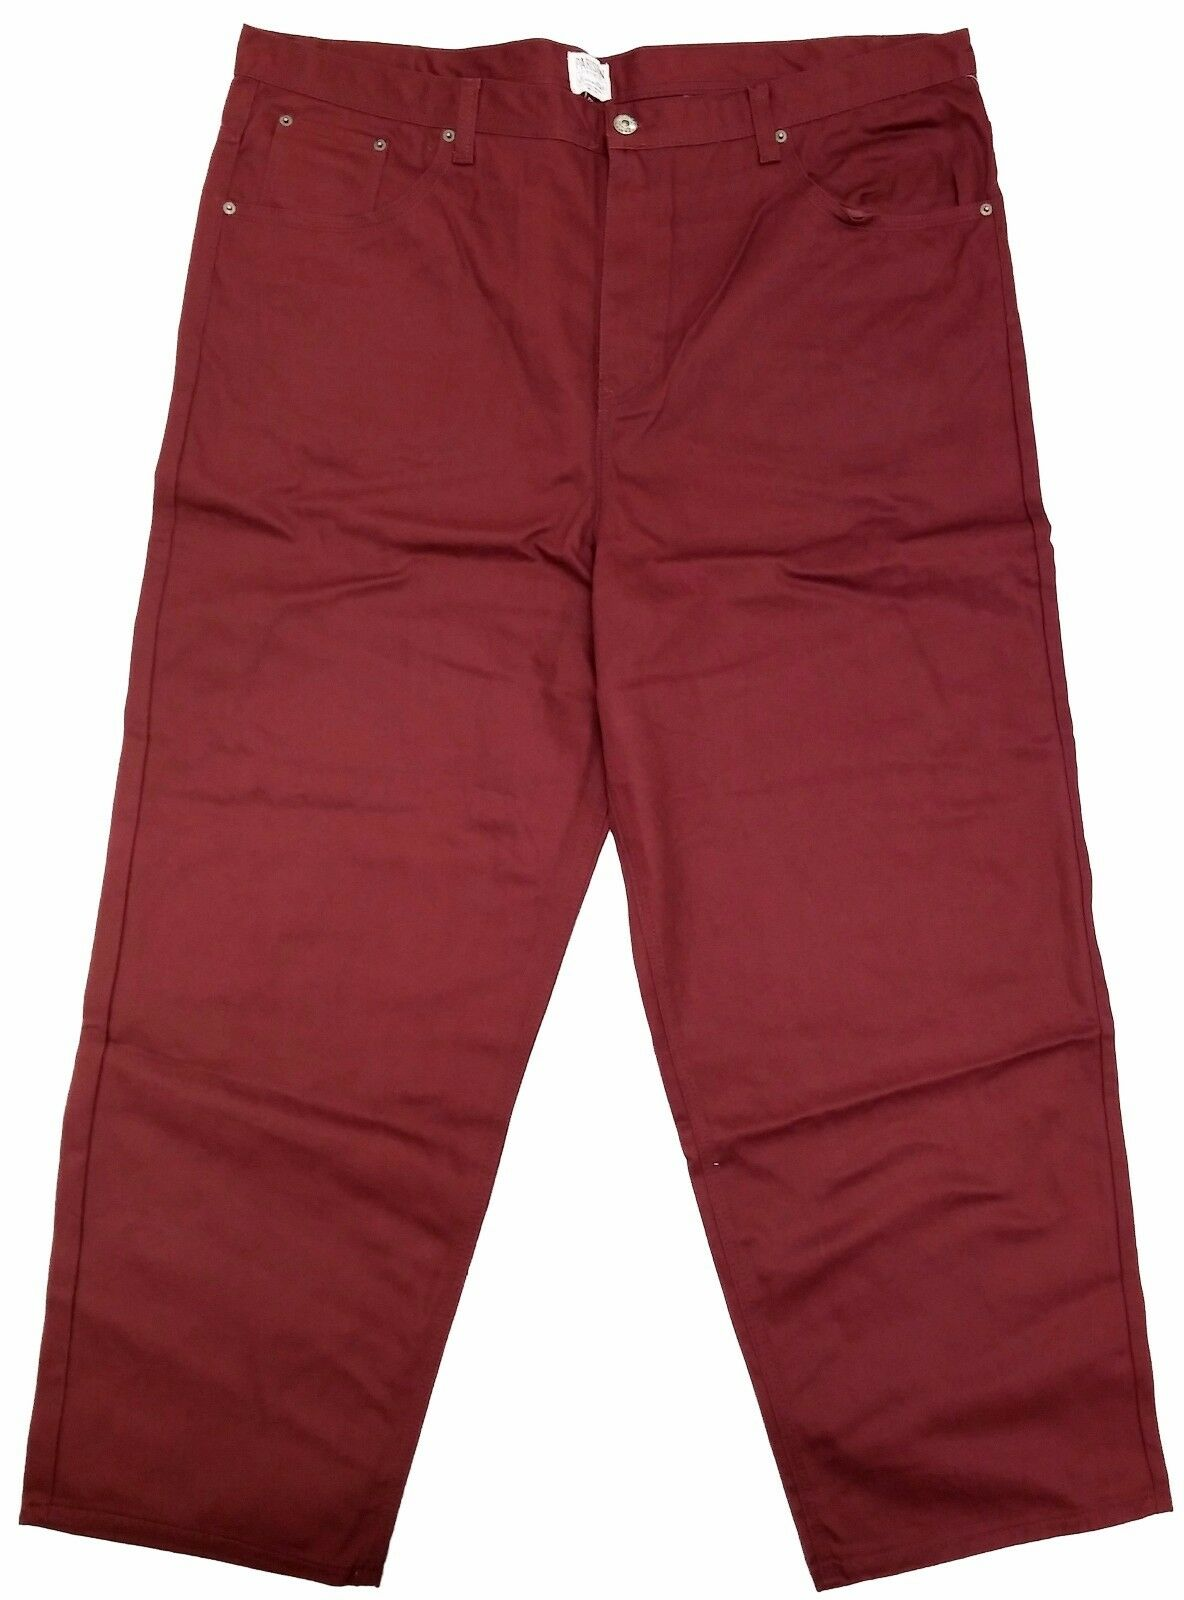 Parish Nation Burgundy Casual Pants